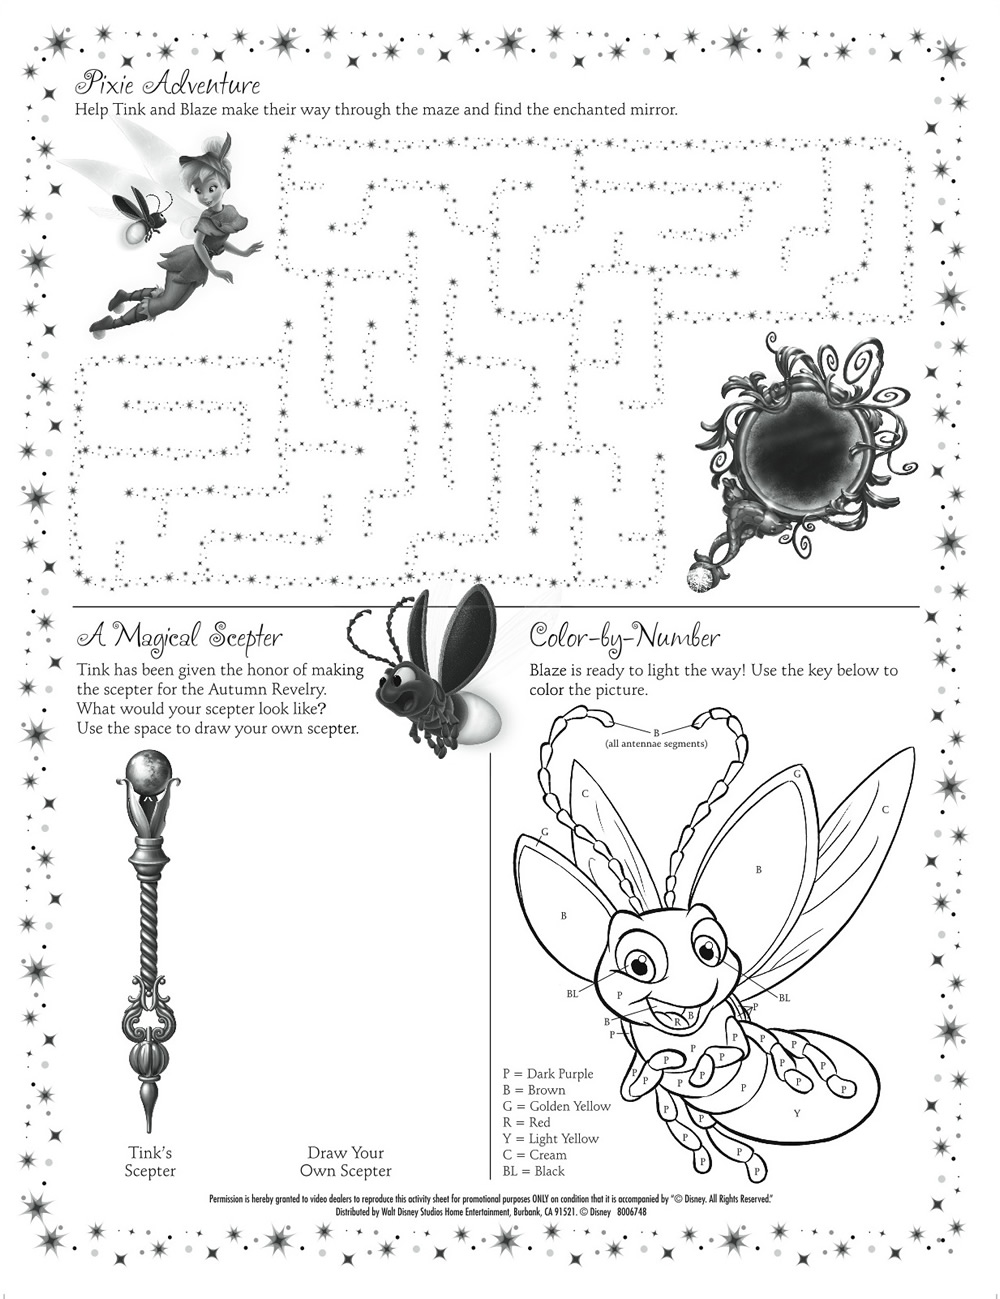 5 Images of Printable Disney Activity Pages